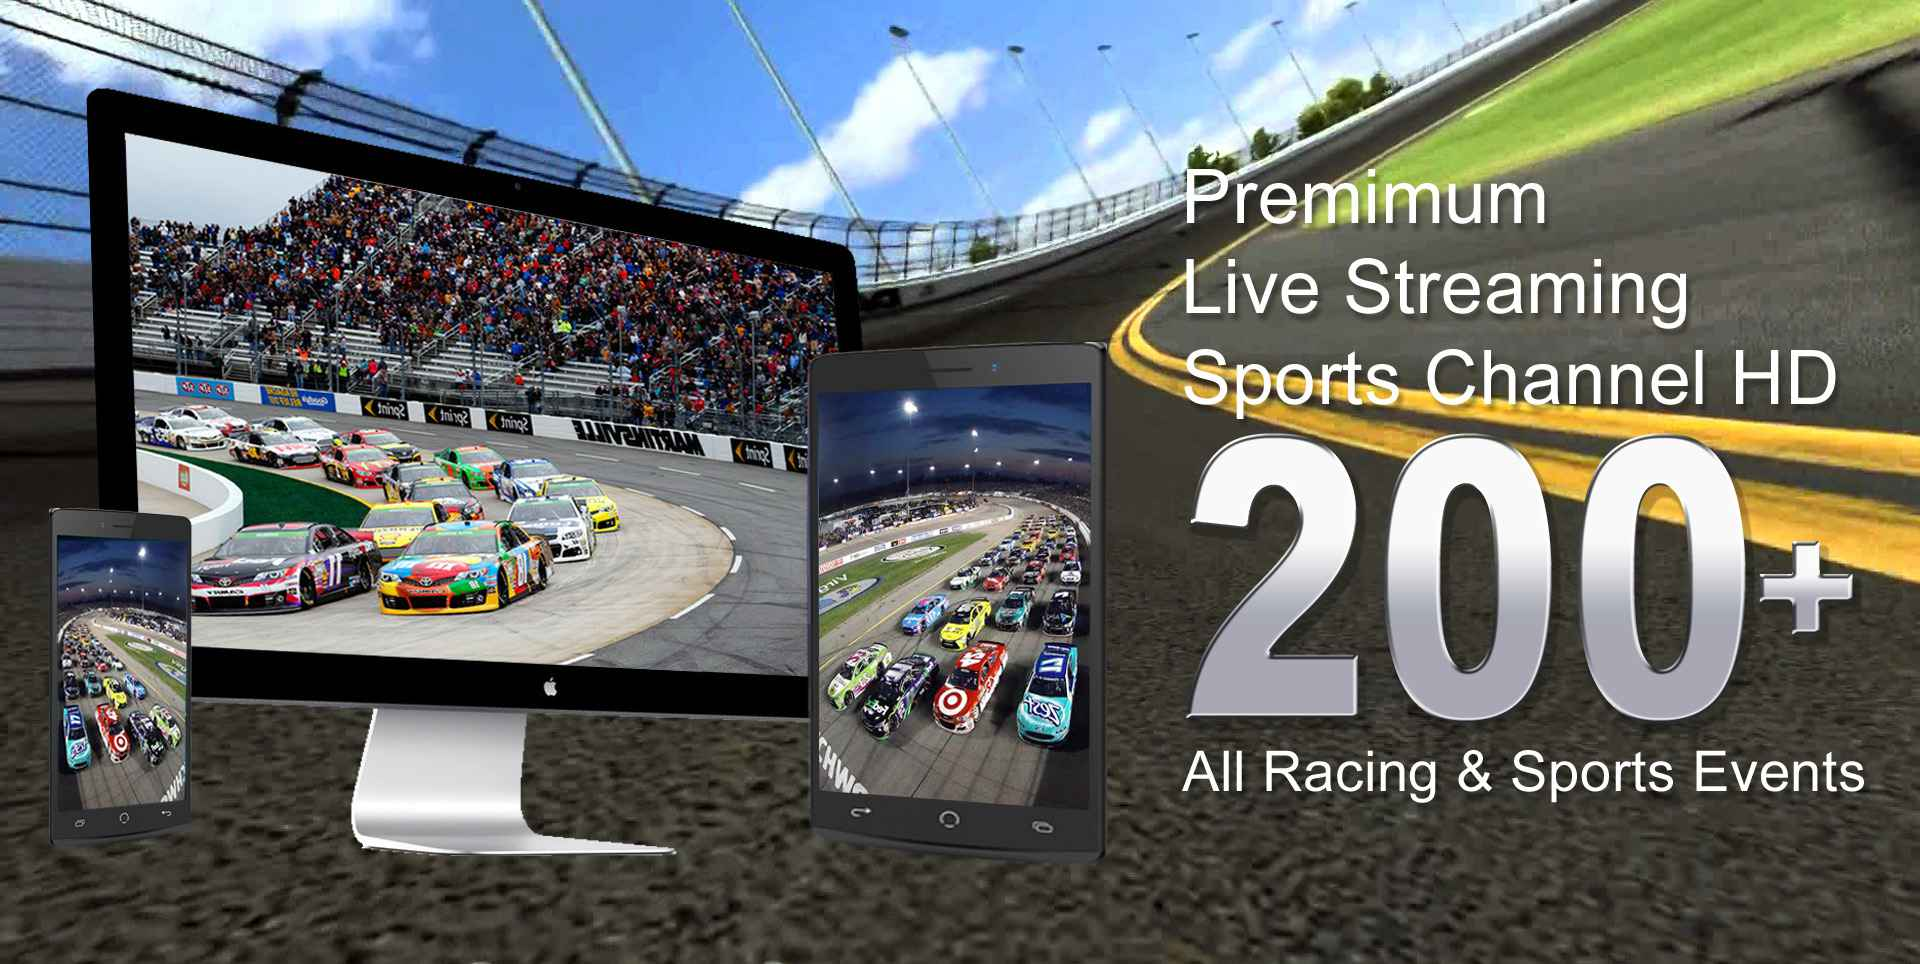 2018-federated-auto-parts-400-nascar-live-stream